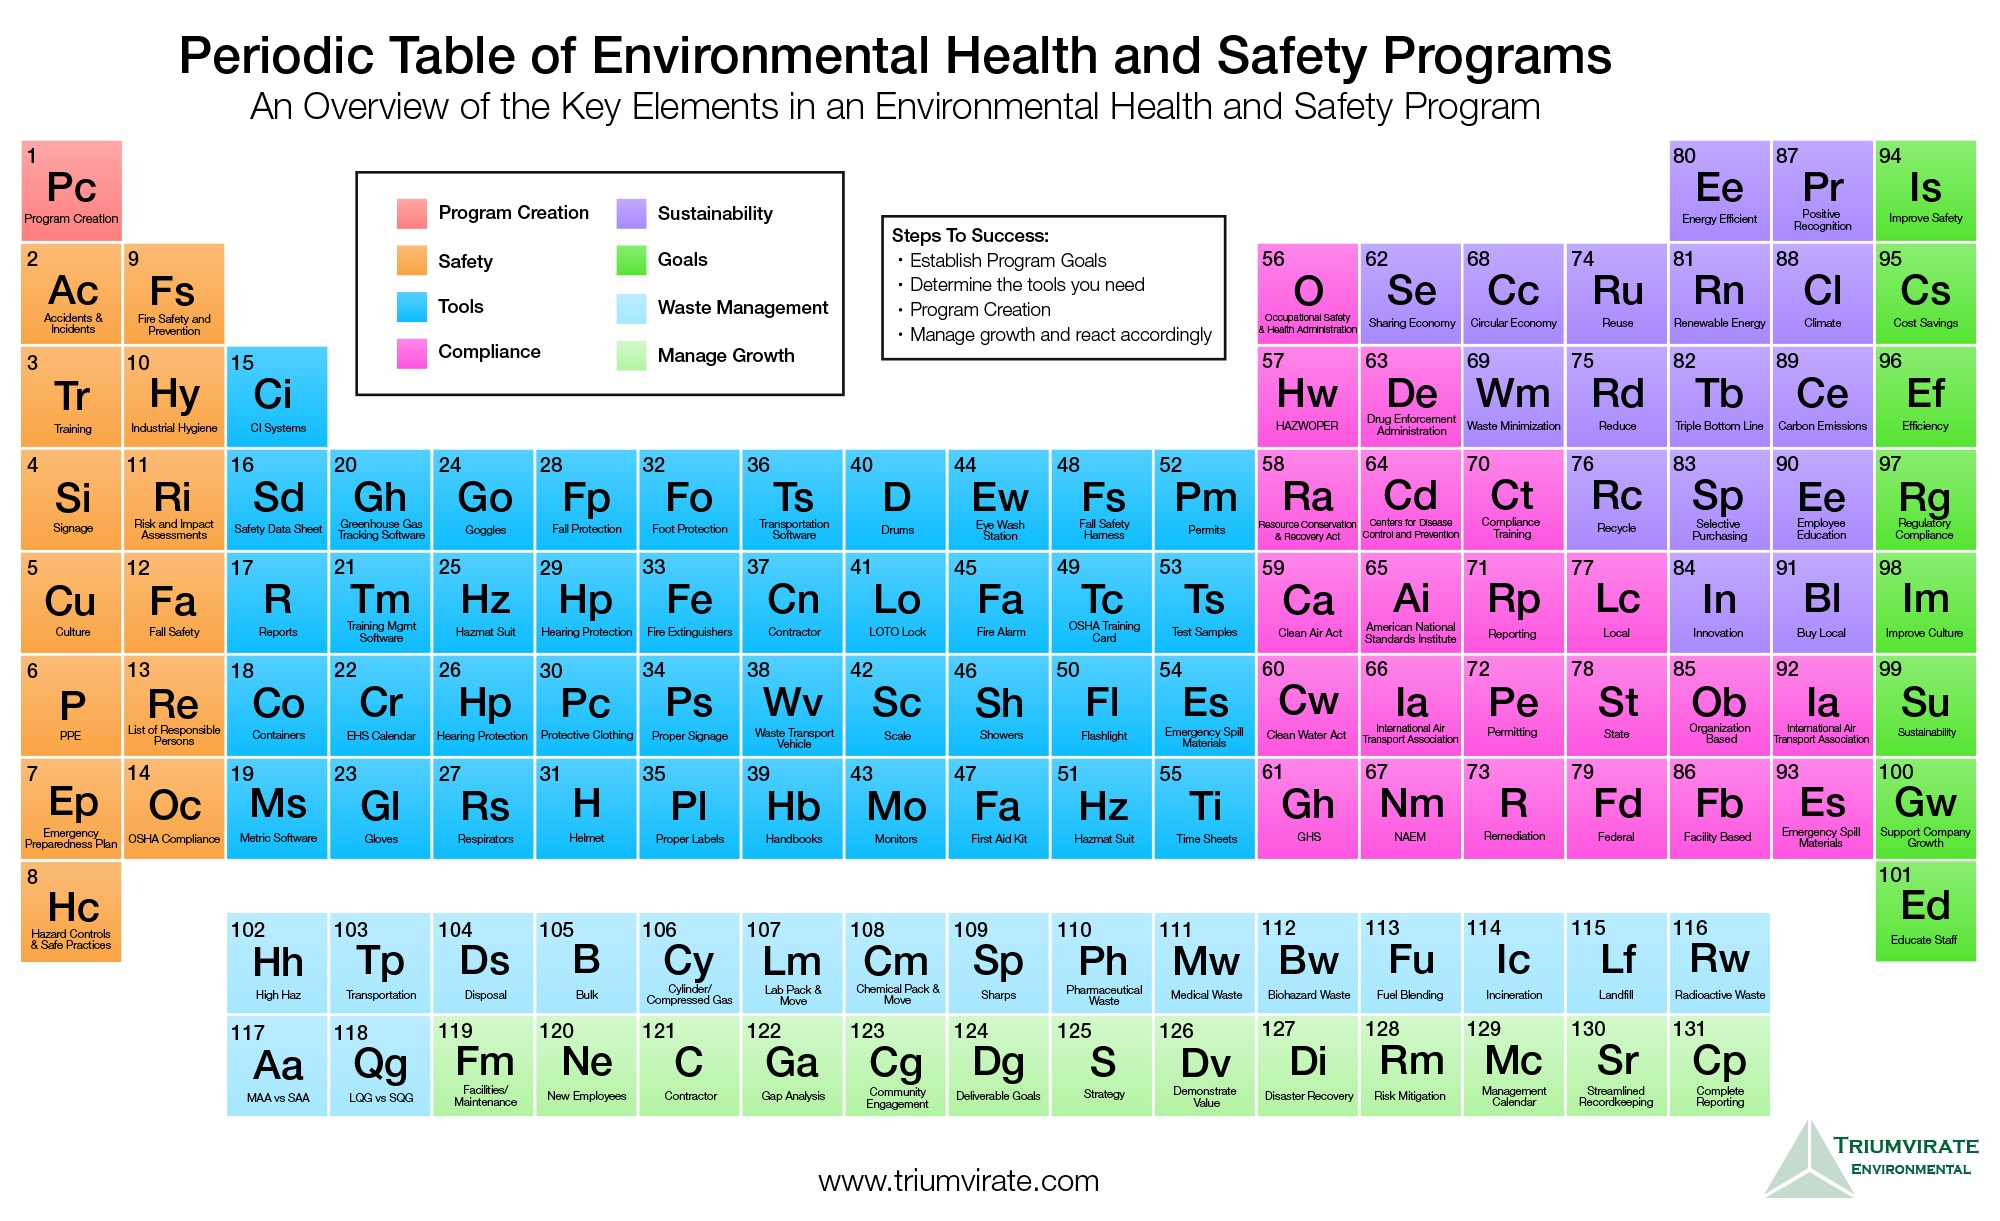 Triumvirate environmental creates the periodic table of ehs periodic table of ehsperiodic table of ehs gamestrikefo Images